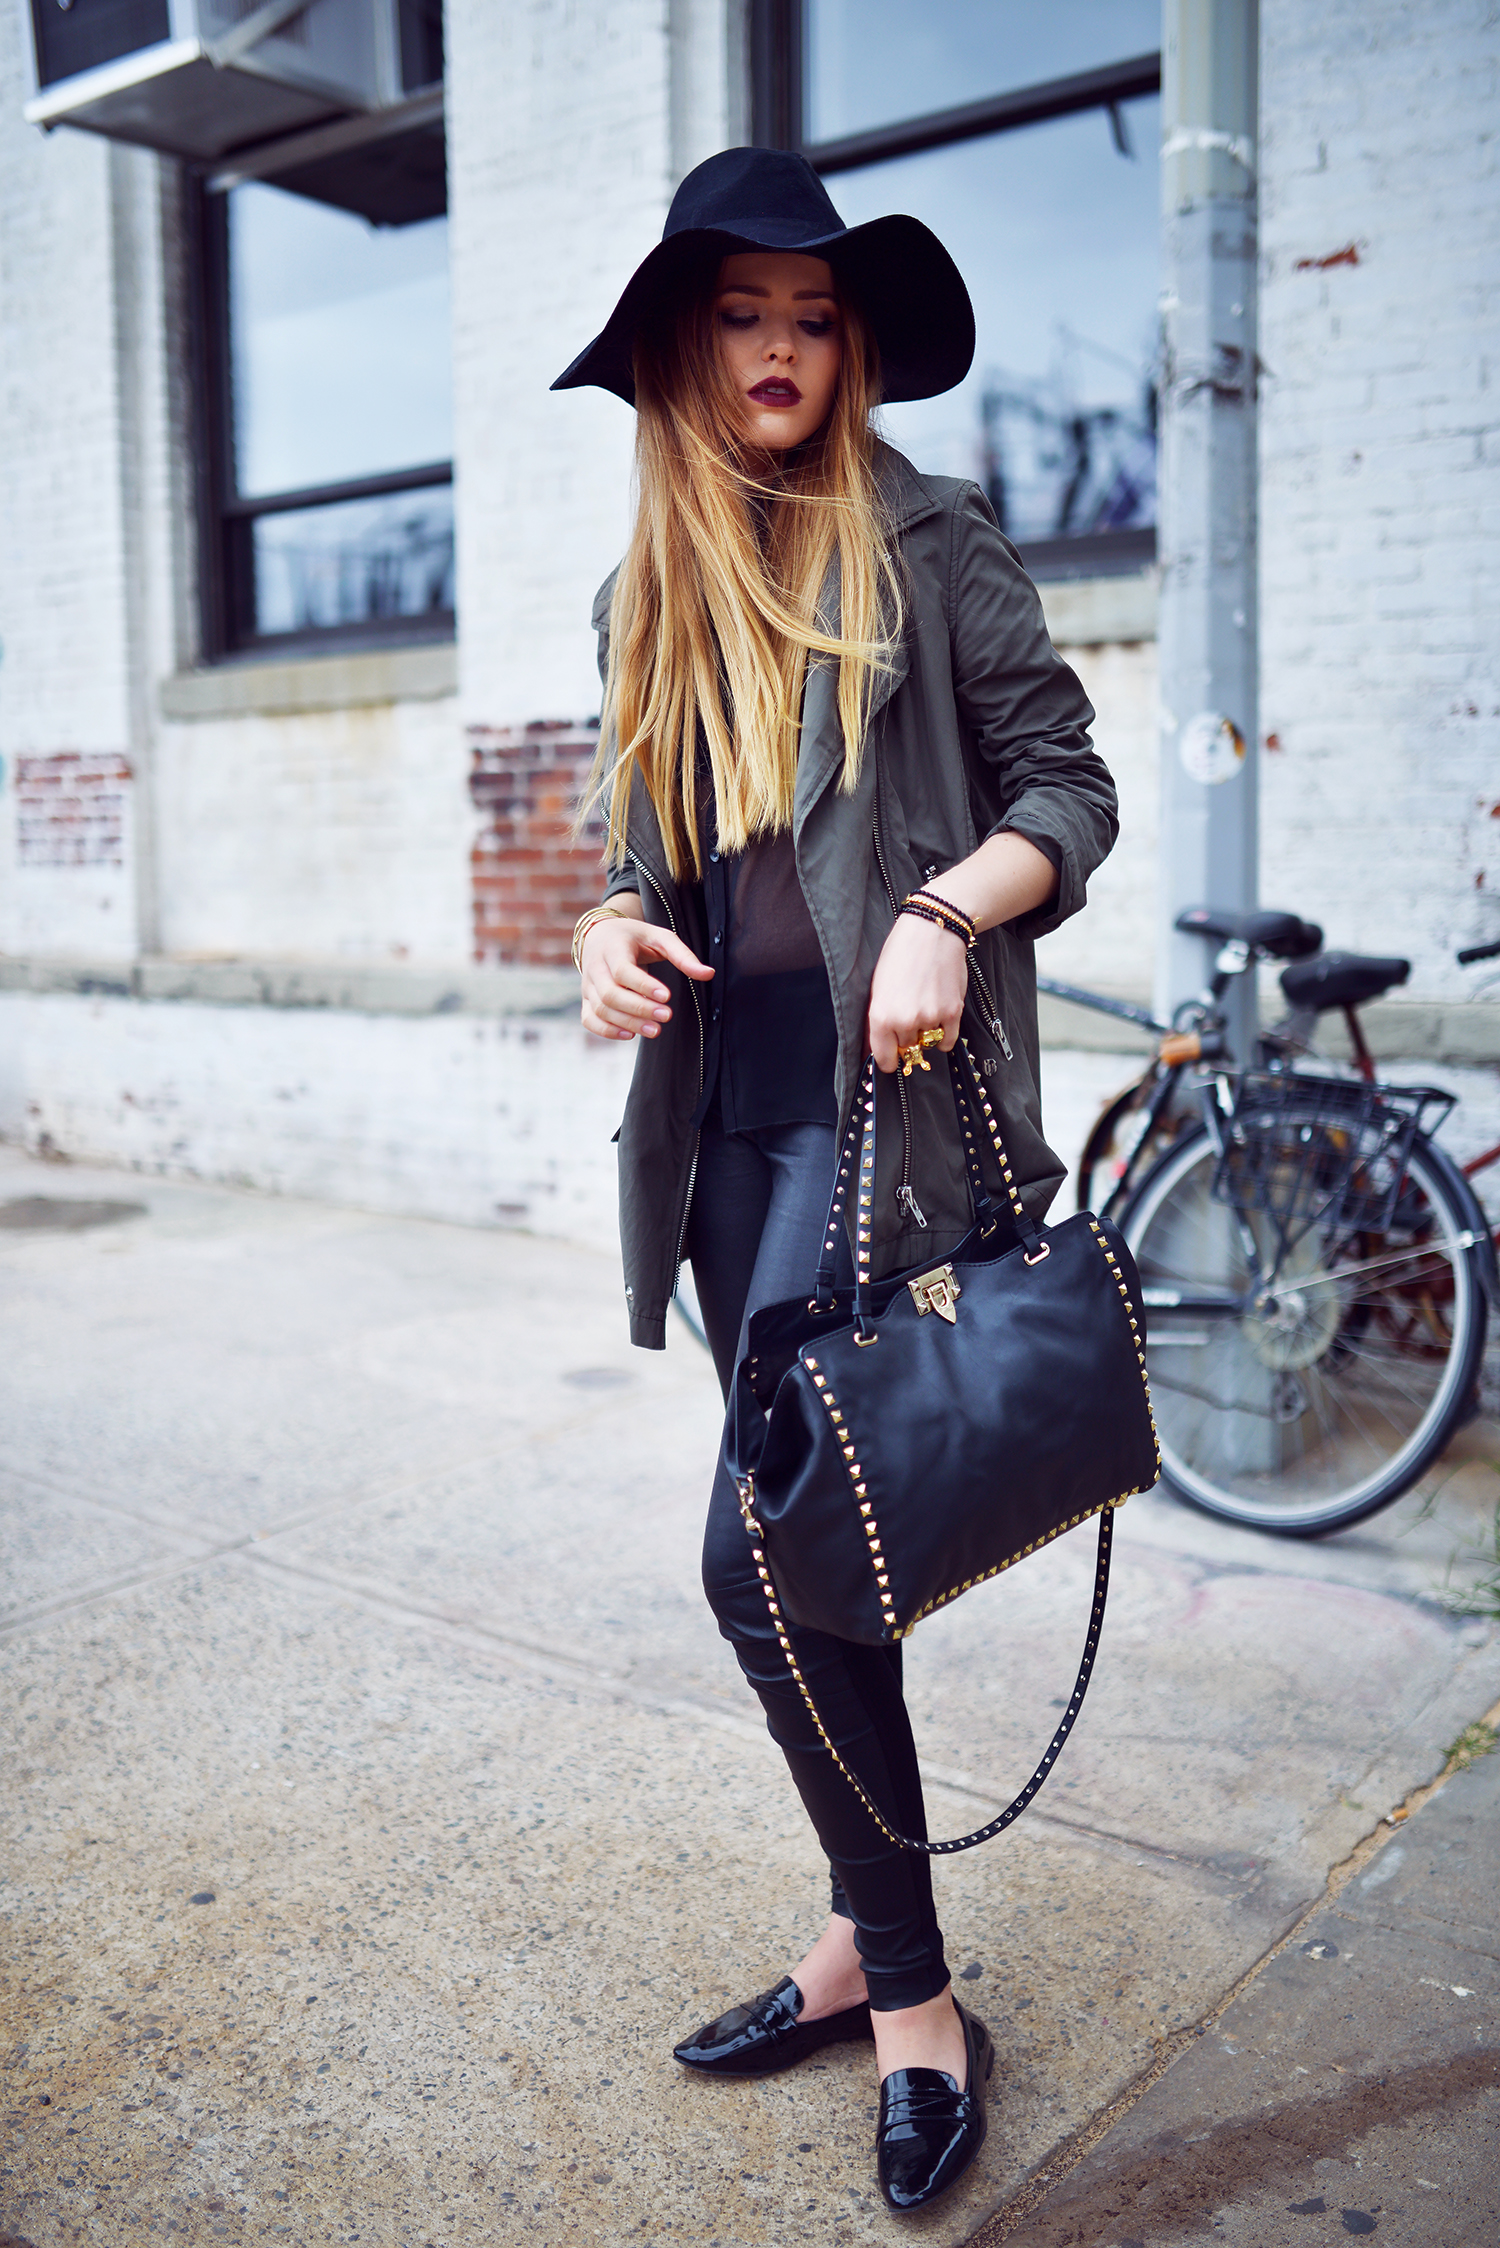 Kristina Bazan is wearing a top from Minusey, jacket from The Kooples, shoes from Zara, bag from Valentino, hat from H&M and trousers from Hugo Boss